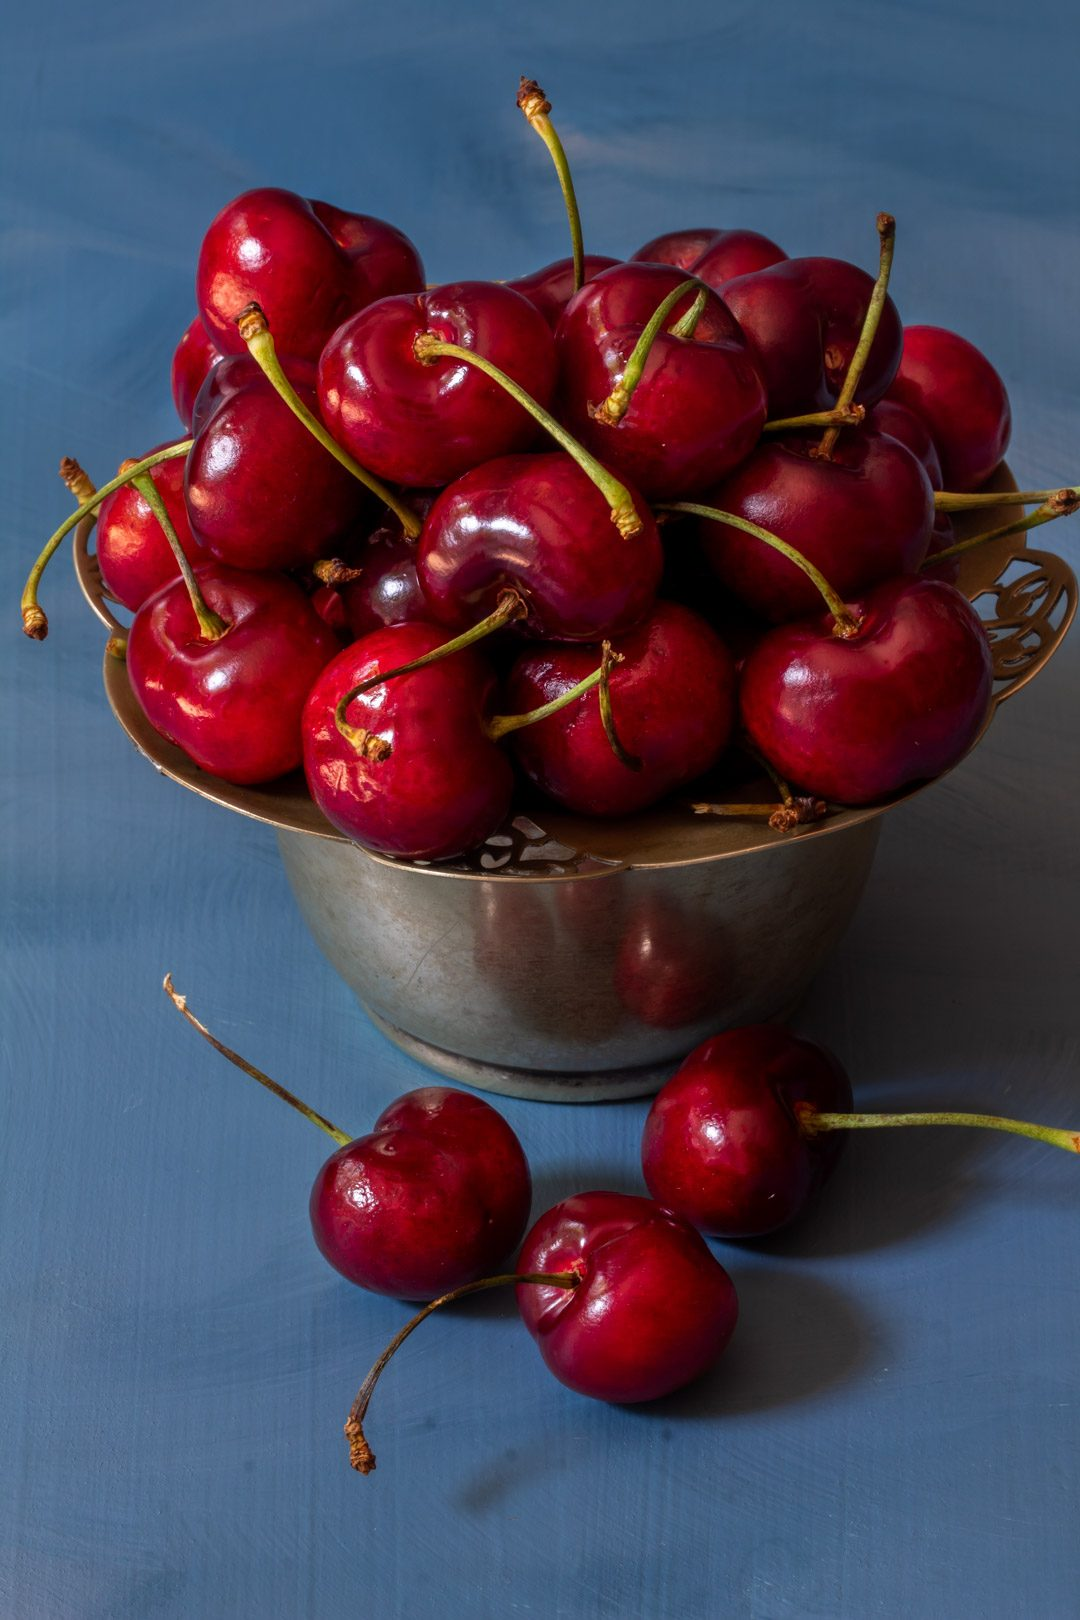 Making spiced pickled cherries with cherries in vintage sugar bowl from 45 degrees